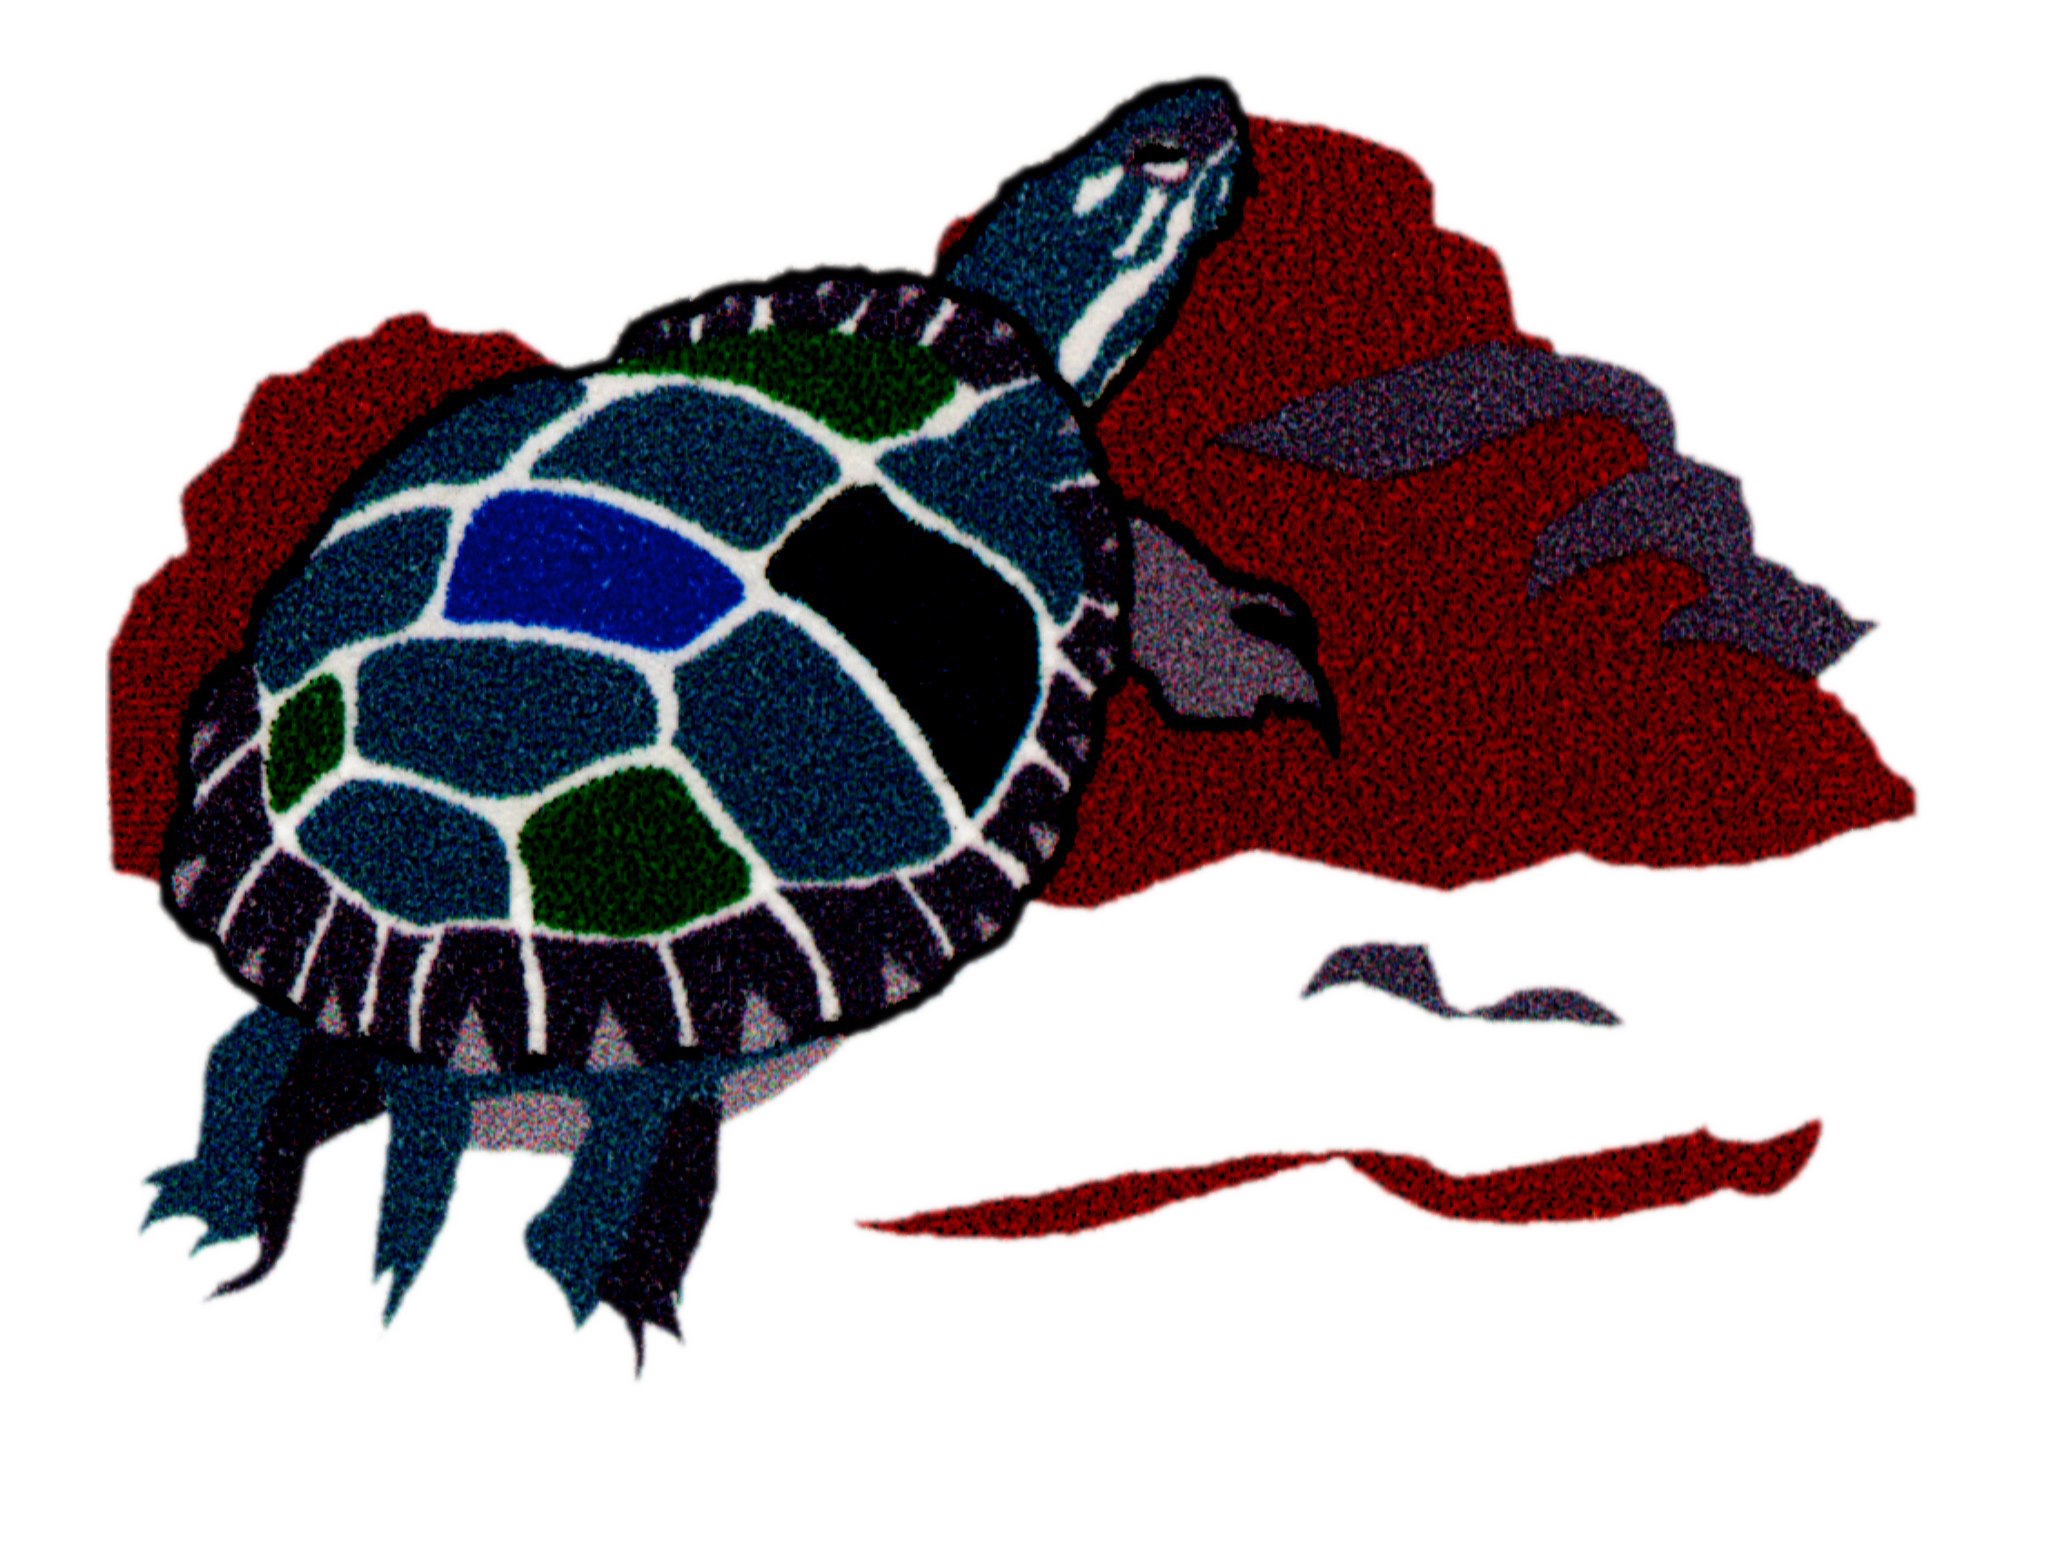 Turtle Gap Inc